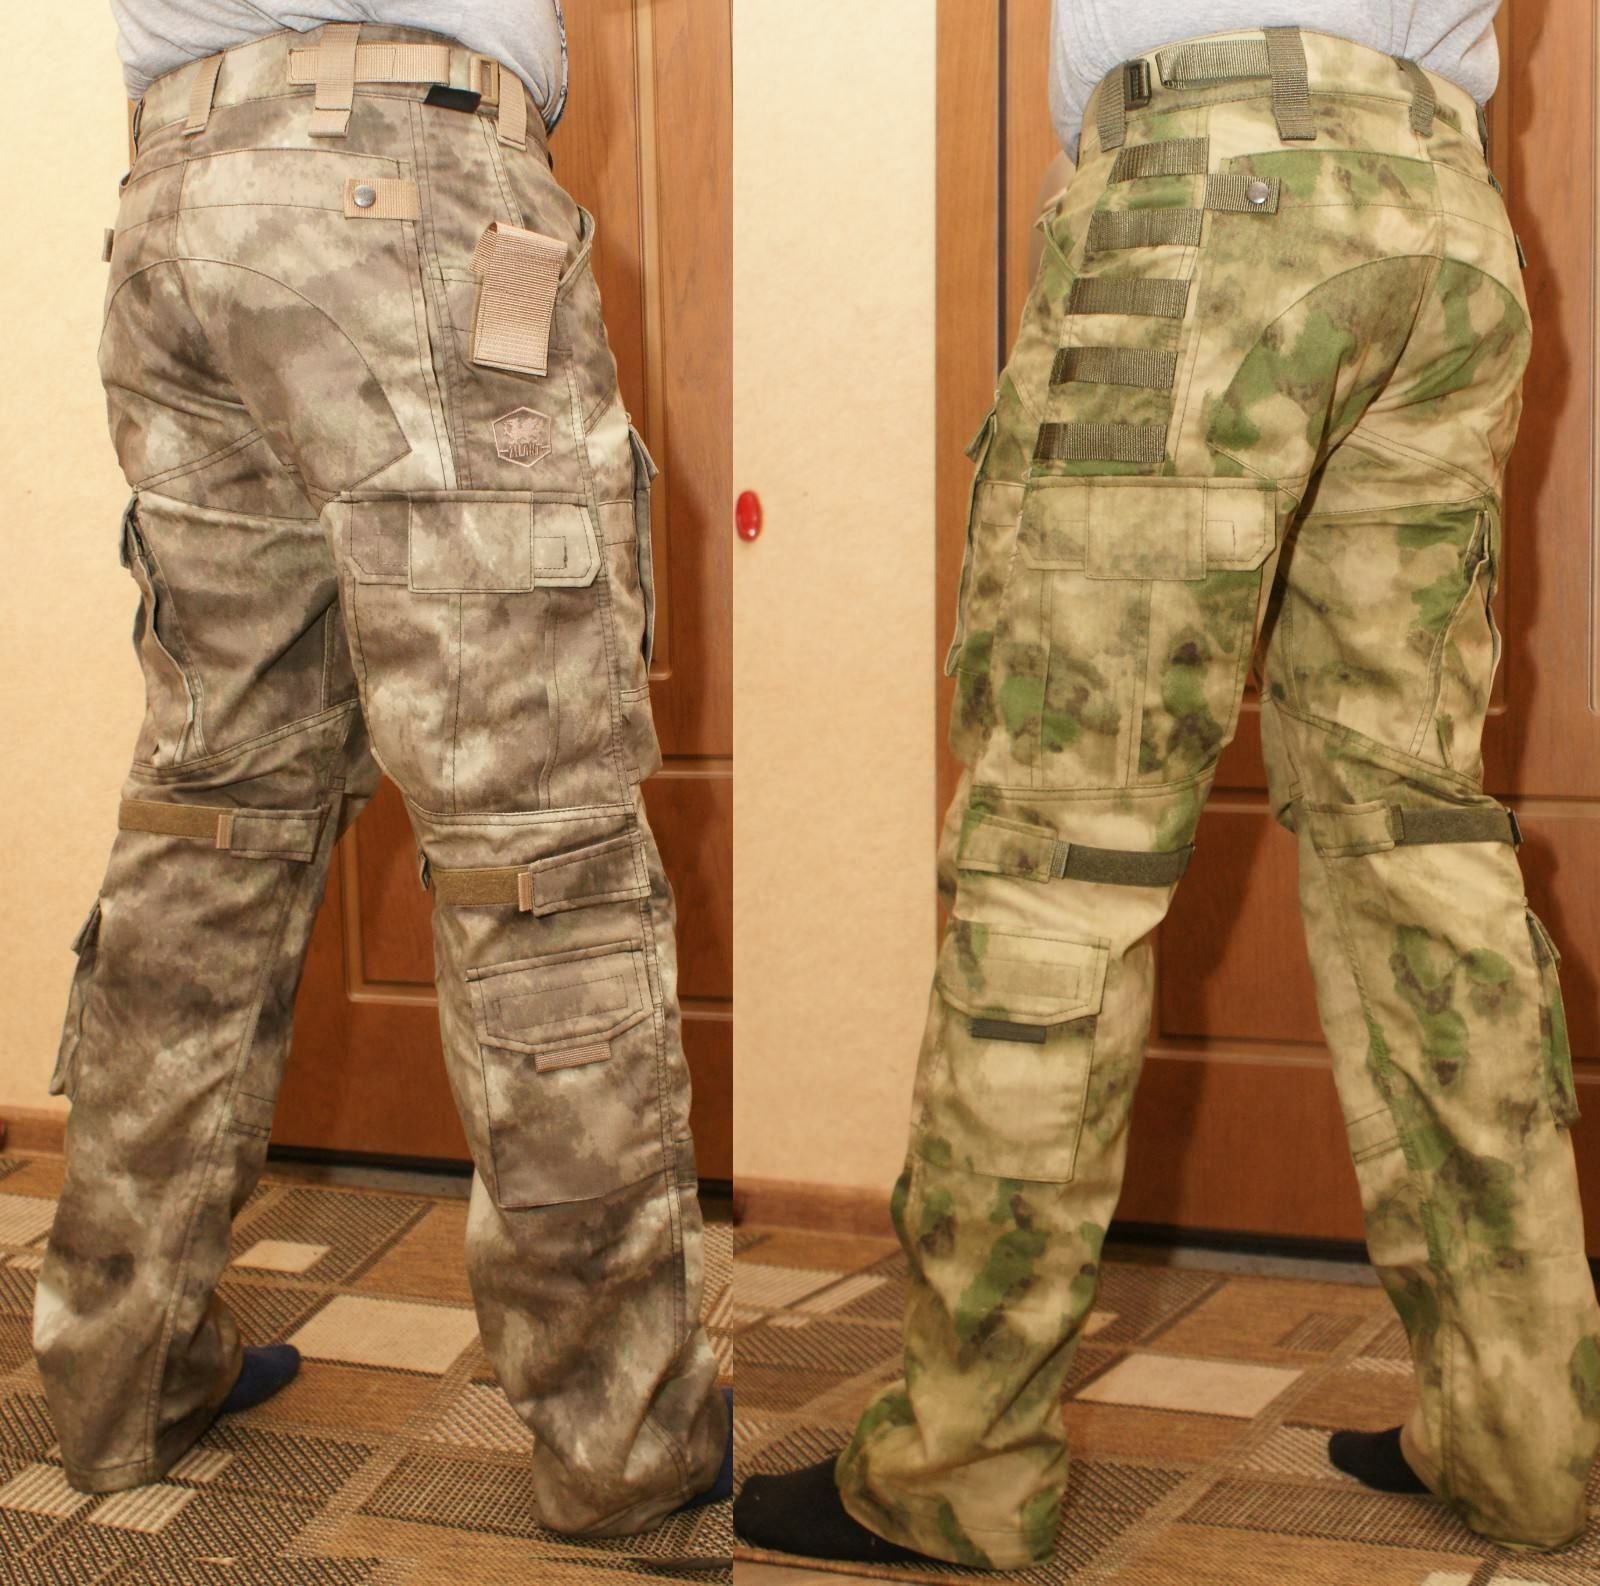 TACTICAL PANTS MENS A-TACS FG &  AU Zilant Camouflage 35% cotton 65% polyester  top brand